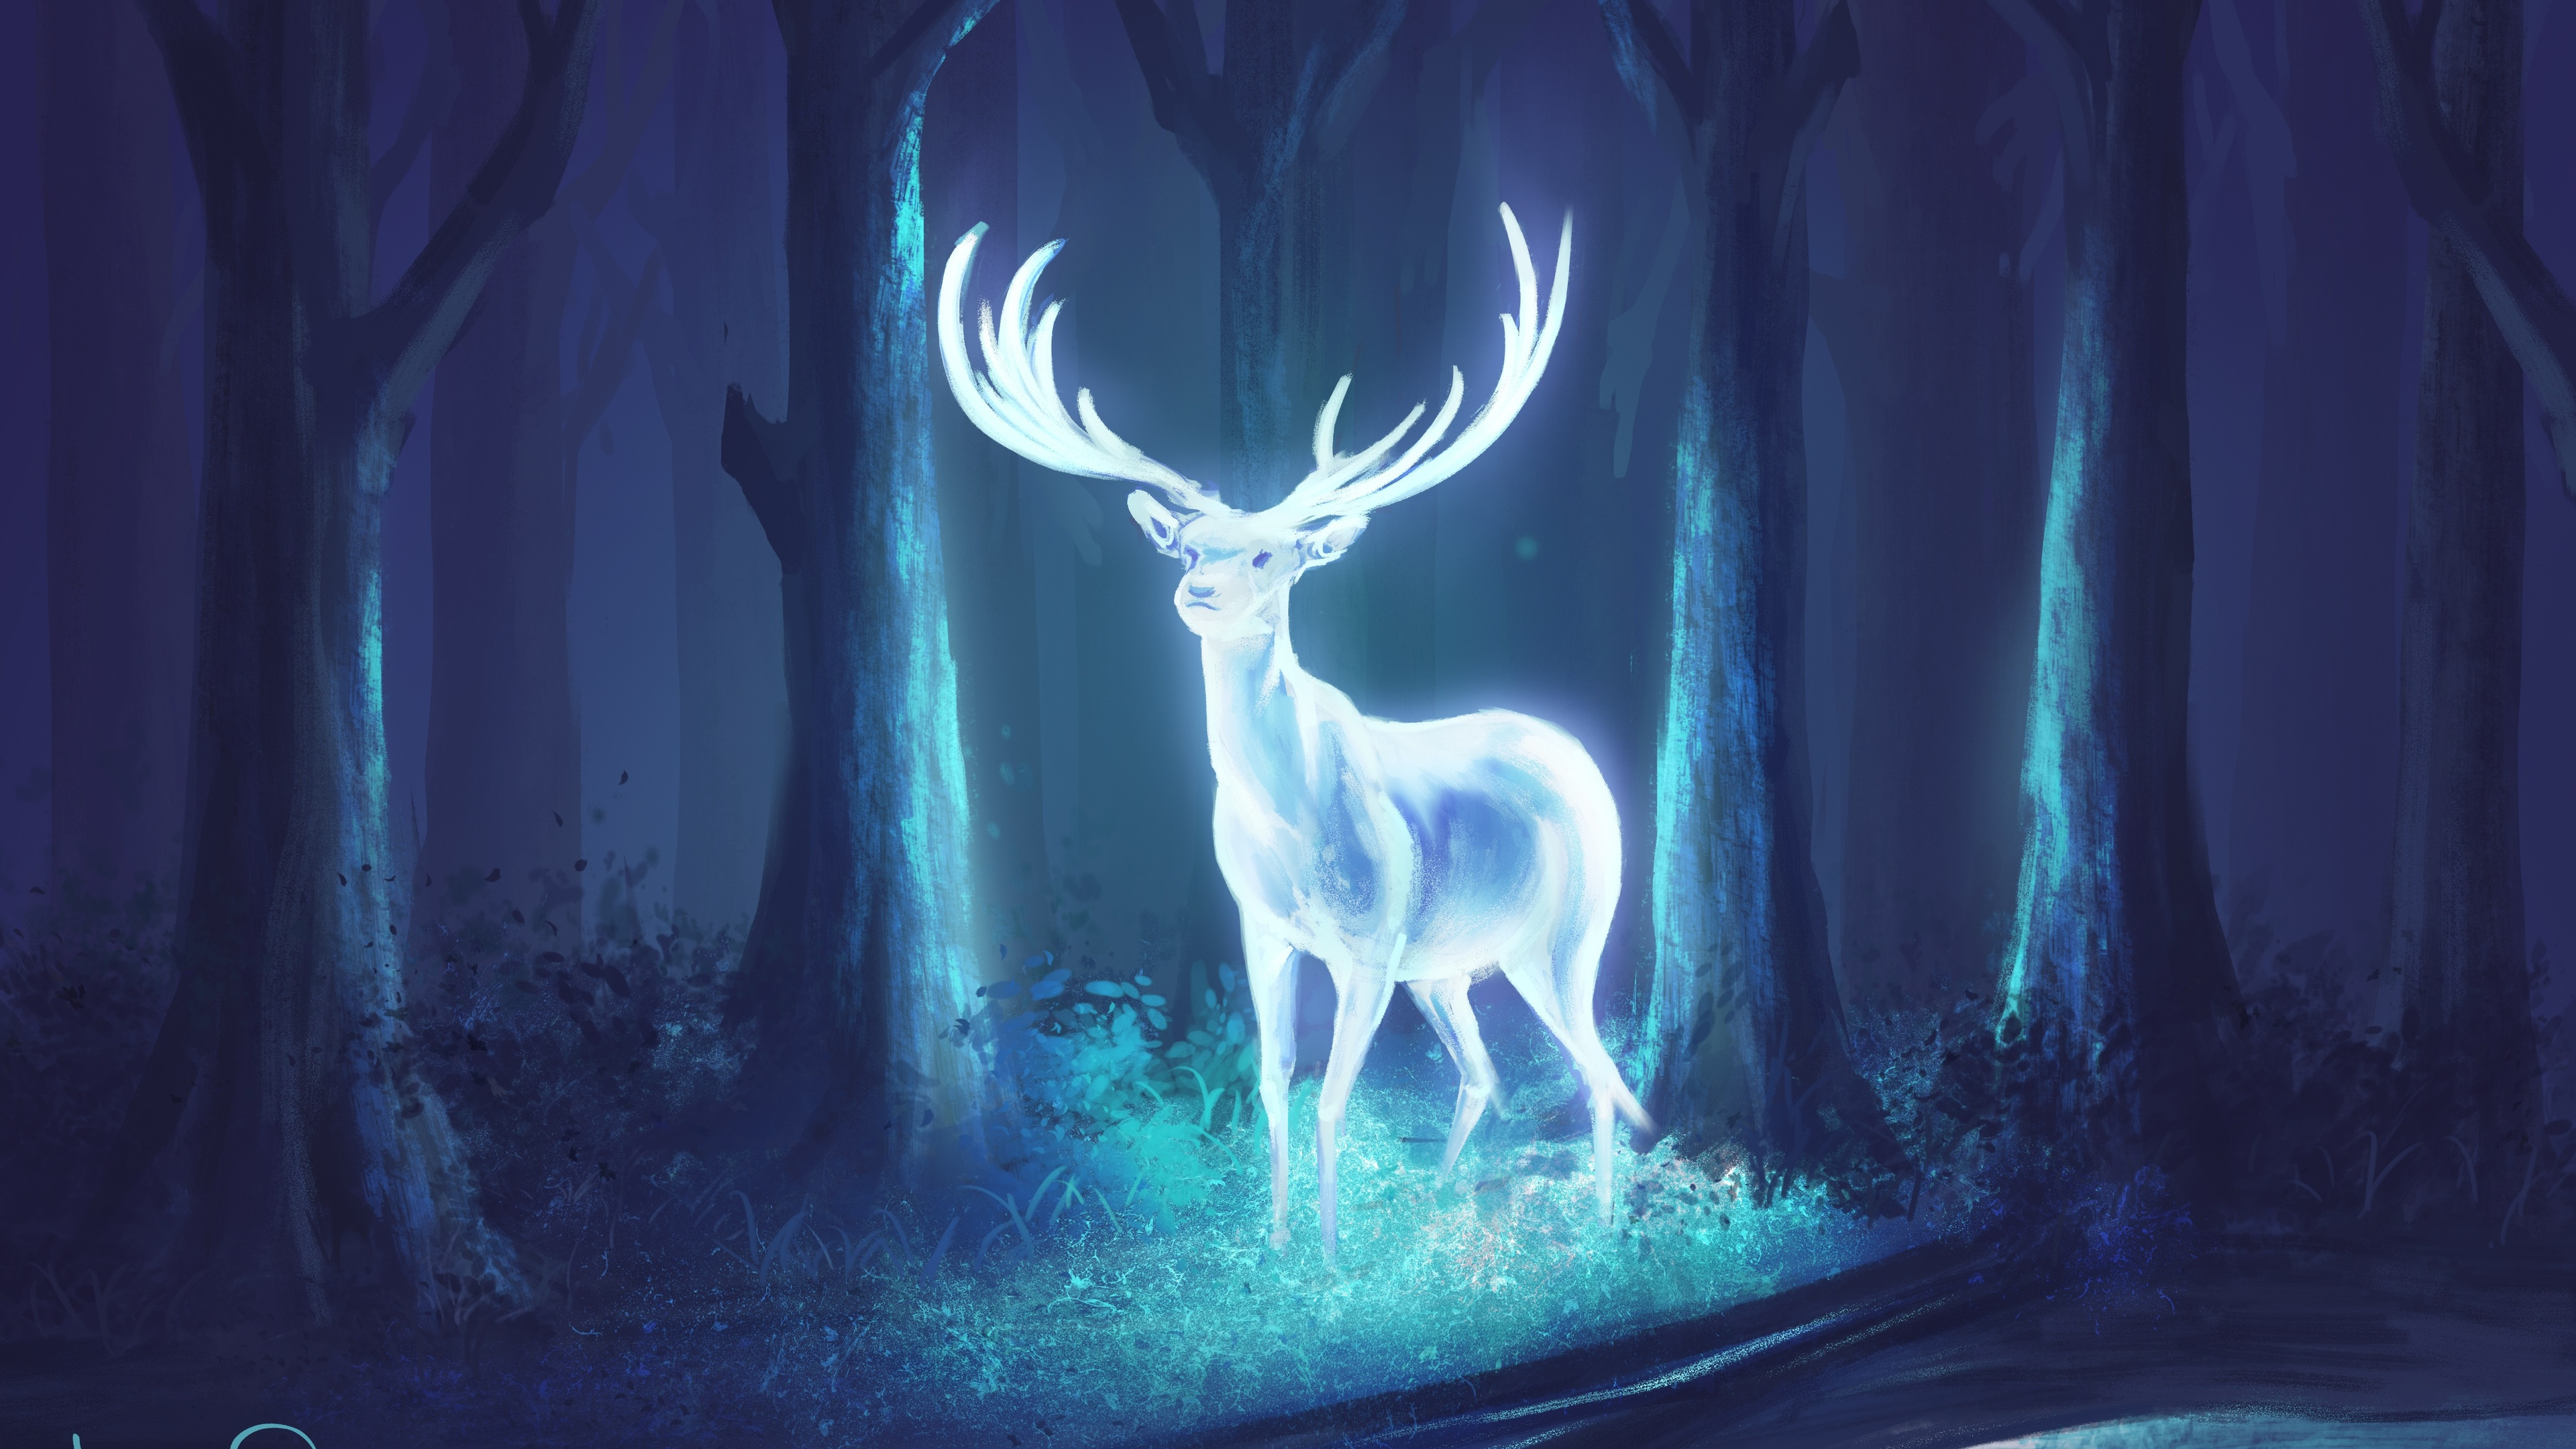 deer fantasy artwork 4k 1540751687 - Deer Fantasy Artwork 4k - hd-wallpapers, forest wallpapers, fantasy wallpapers, digital art wallpapers, deer wallpapers, artwork wallpapers, artist wallpapers, 4k-wallpapers